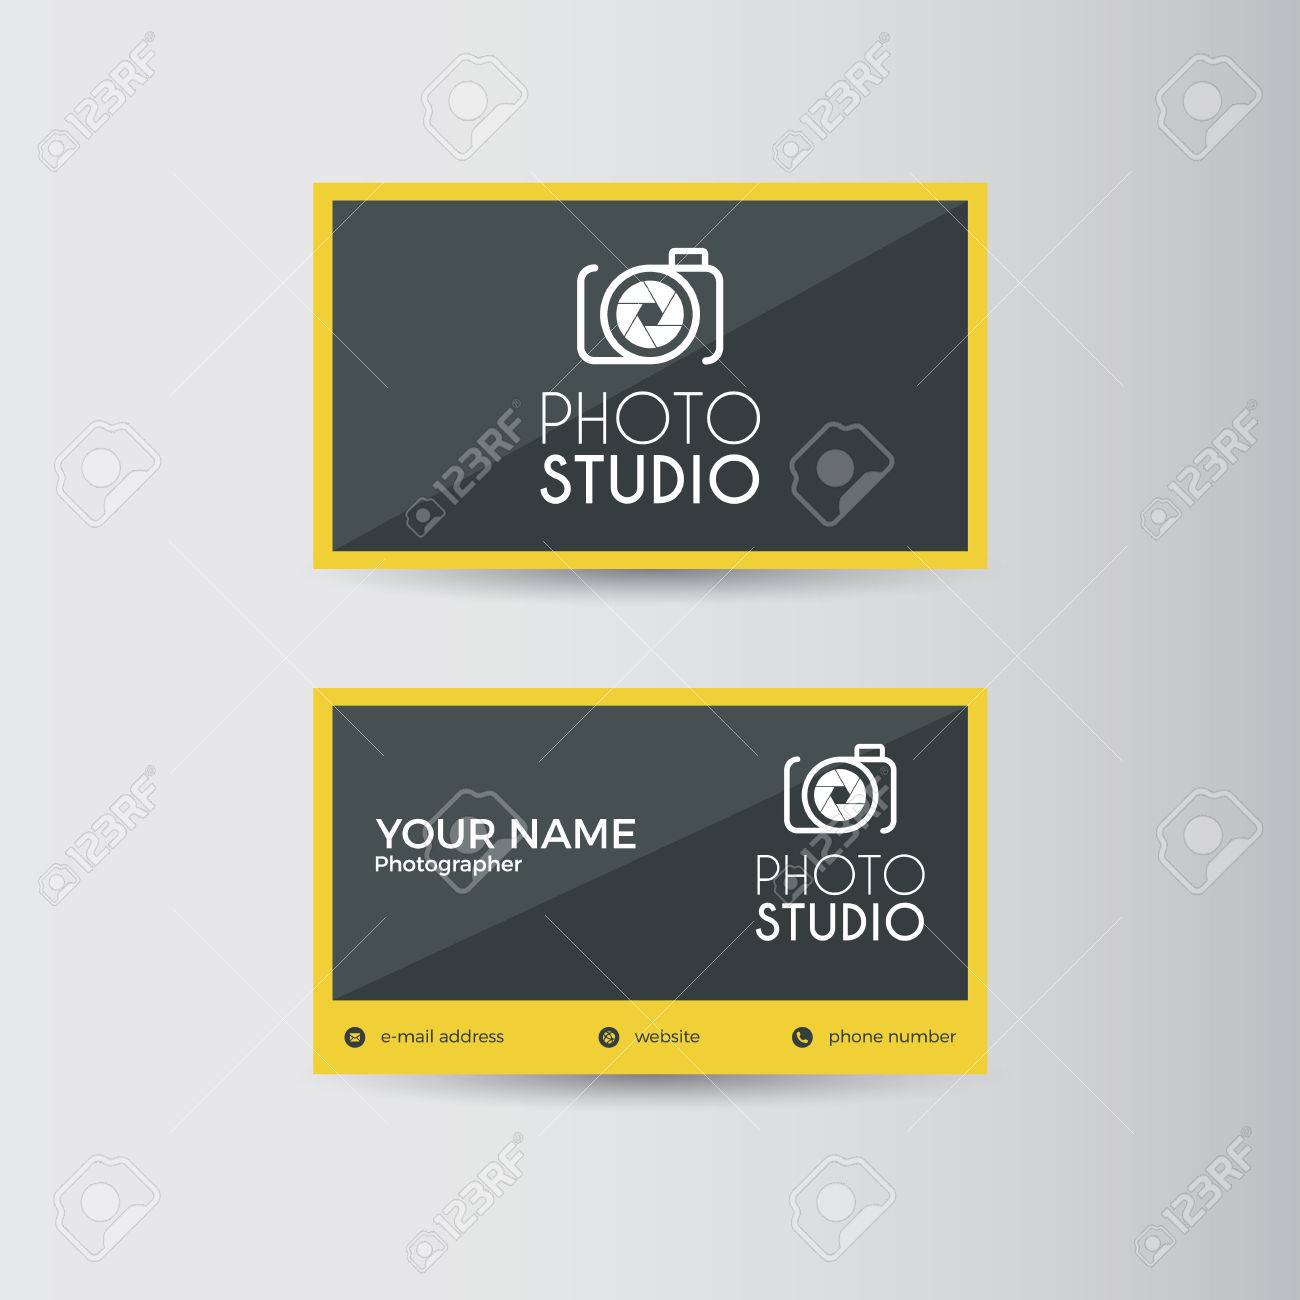 Simple template for photography business card royalty free cliparts simple template for photography business card stock vector 72911064 reheart Gallery